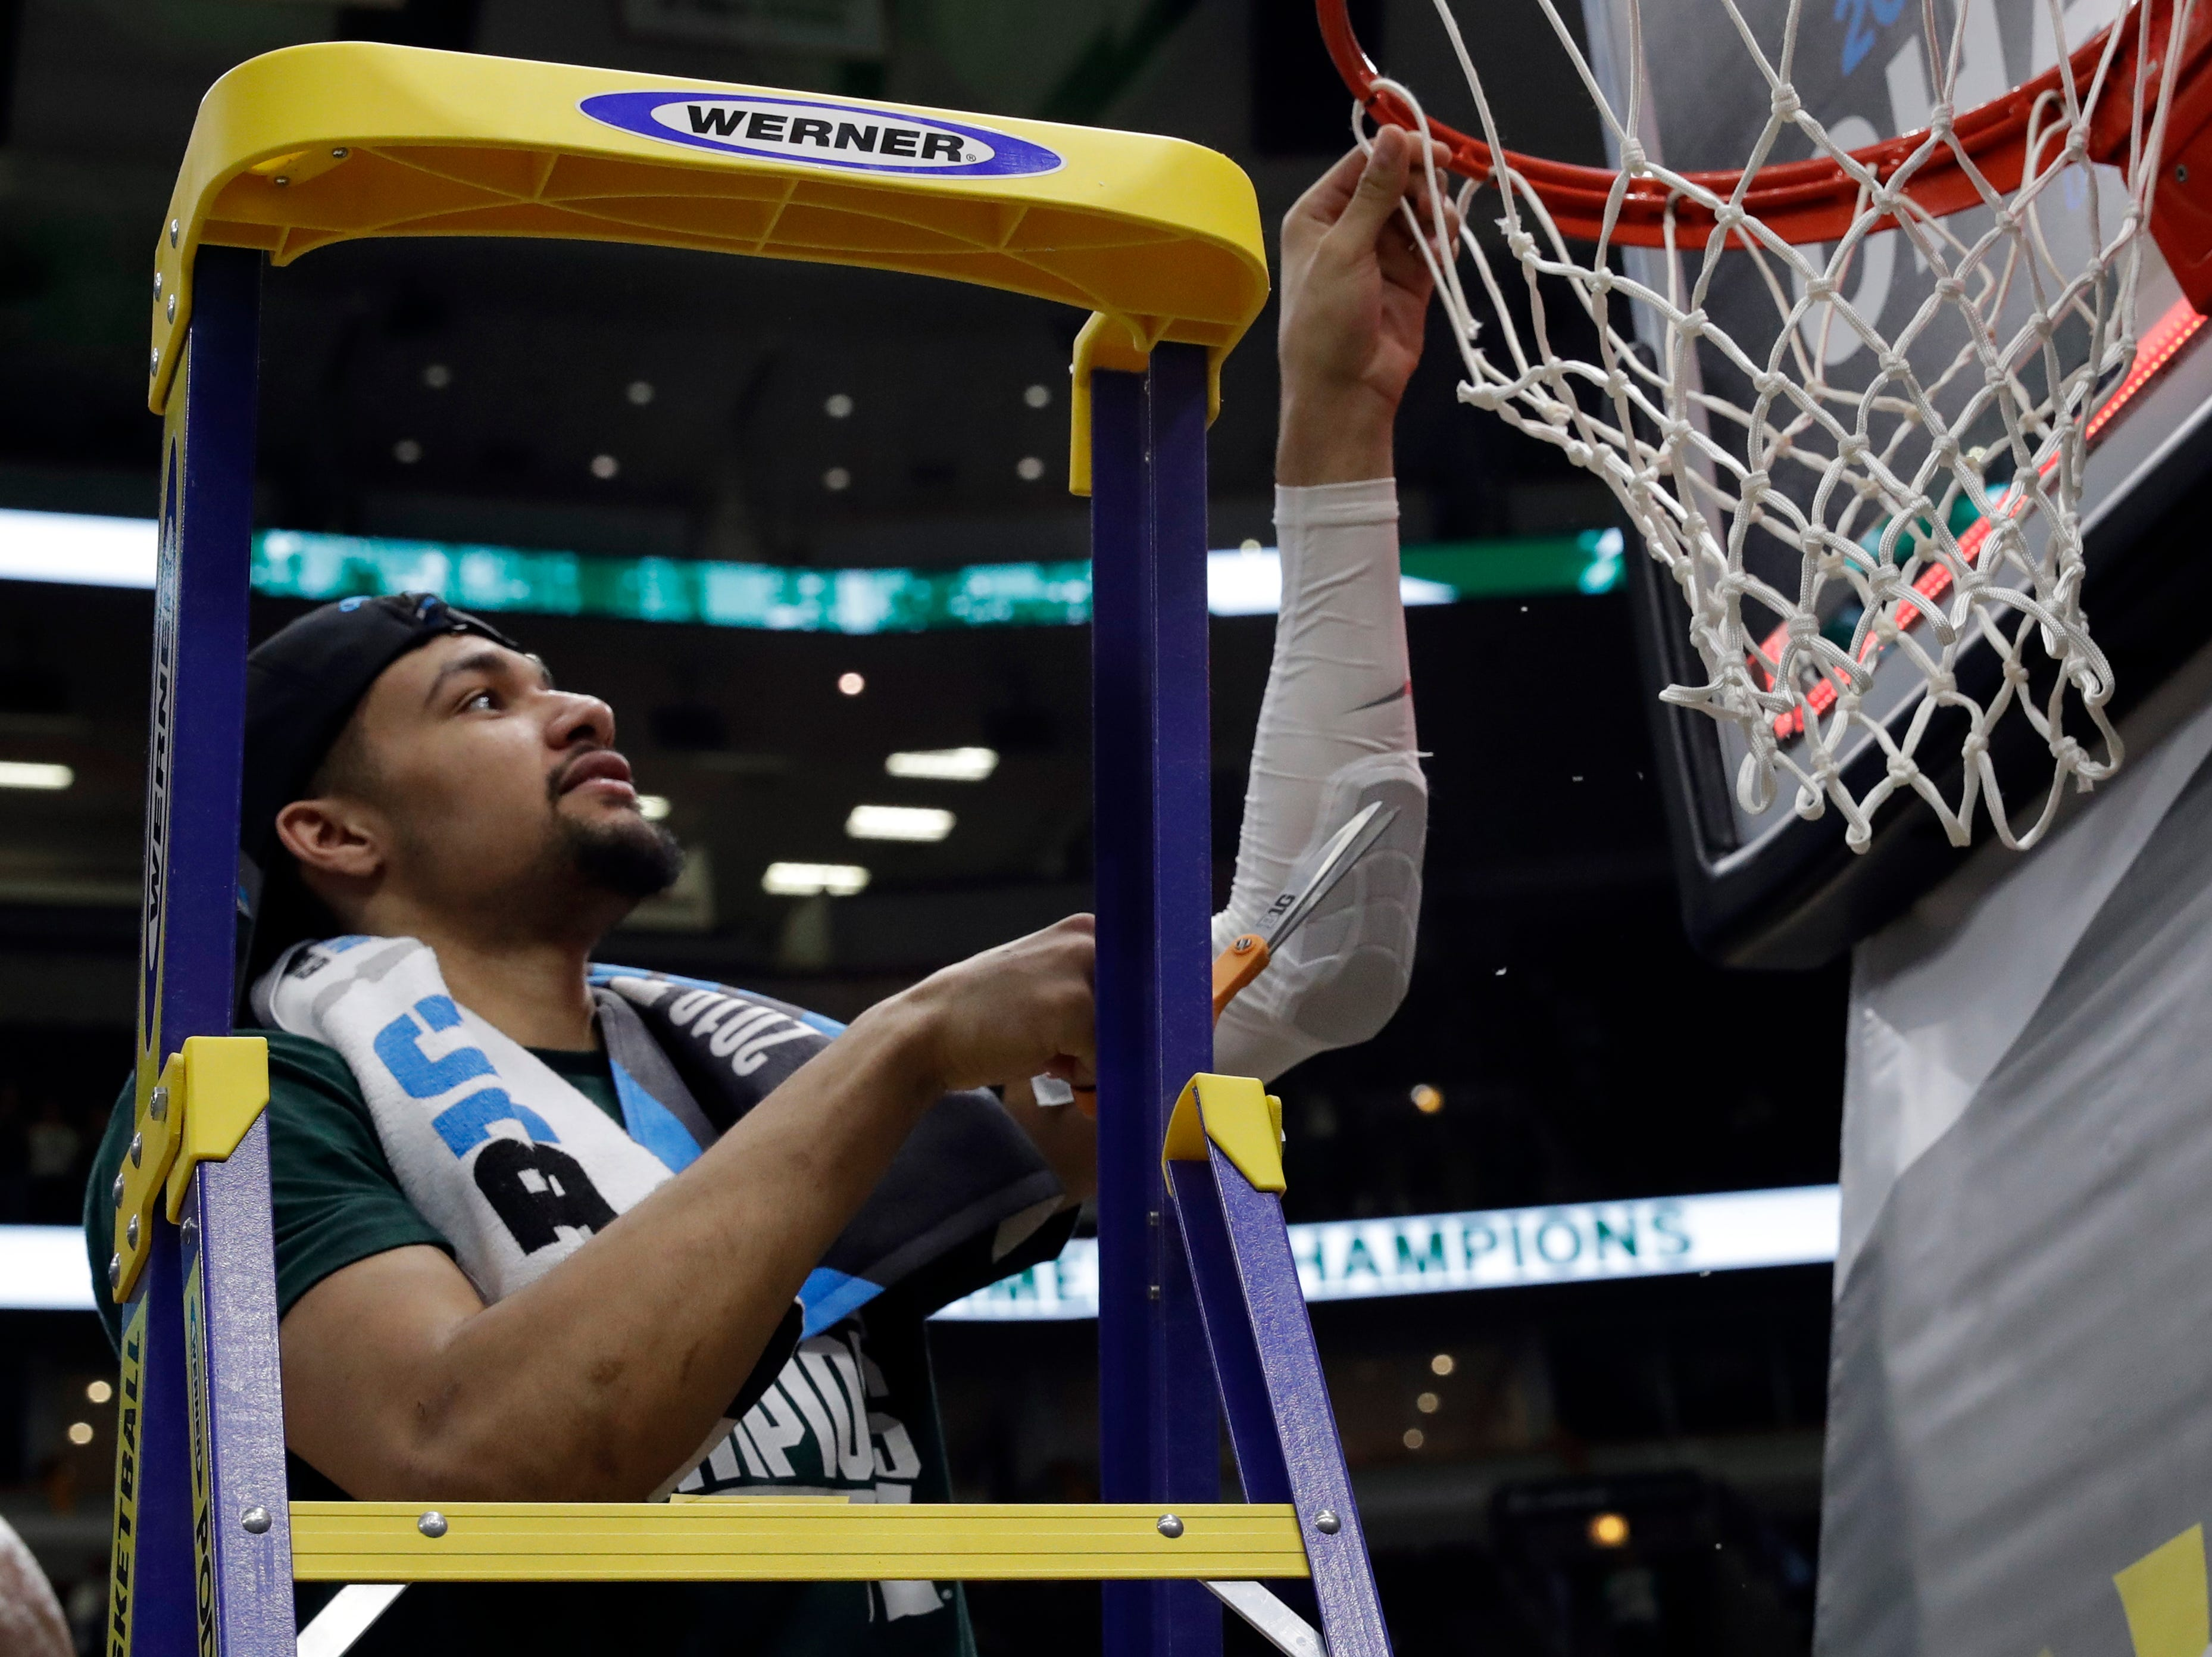 Michigan State's Kenny Goins cuts a piece of the net after defeating Michigan 65-60 in an NCAA college basketball championship game in the Big Ten Conference tournament, Sunday, March 17, 2019, in Chicago. (AP Photo/Nam Y. Huh)